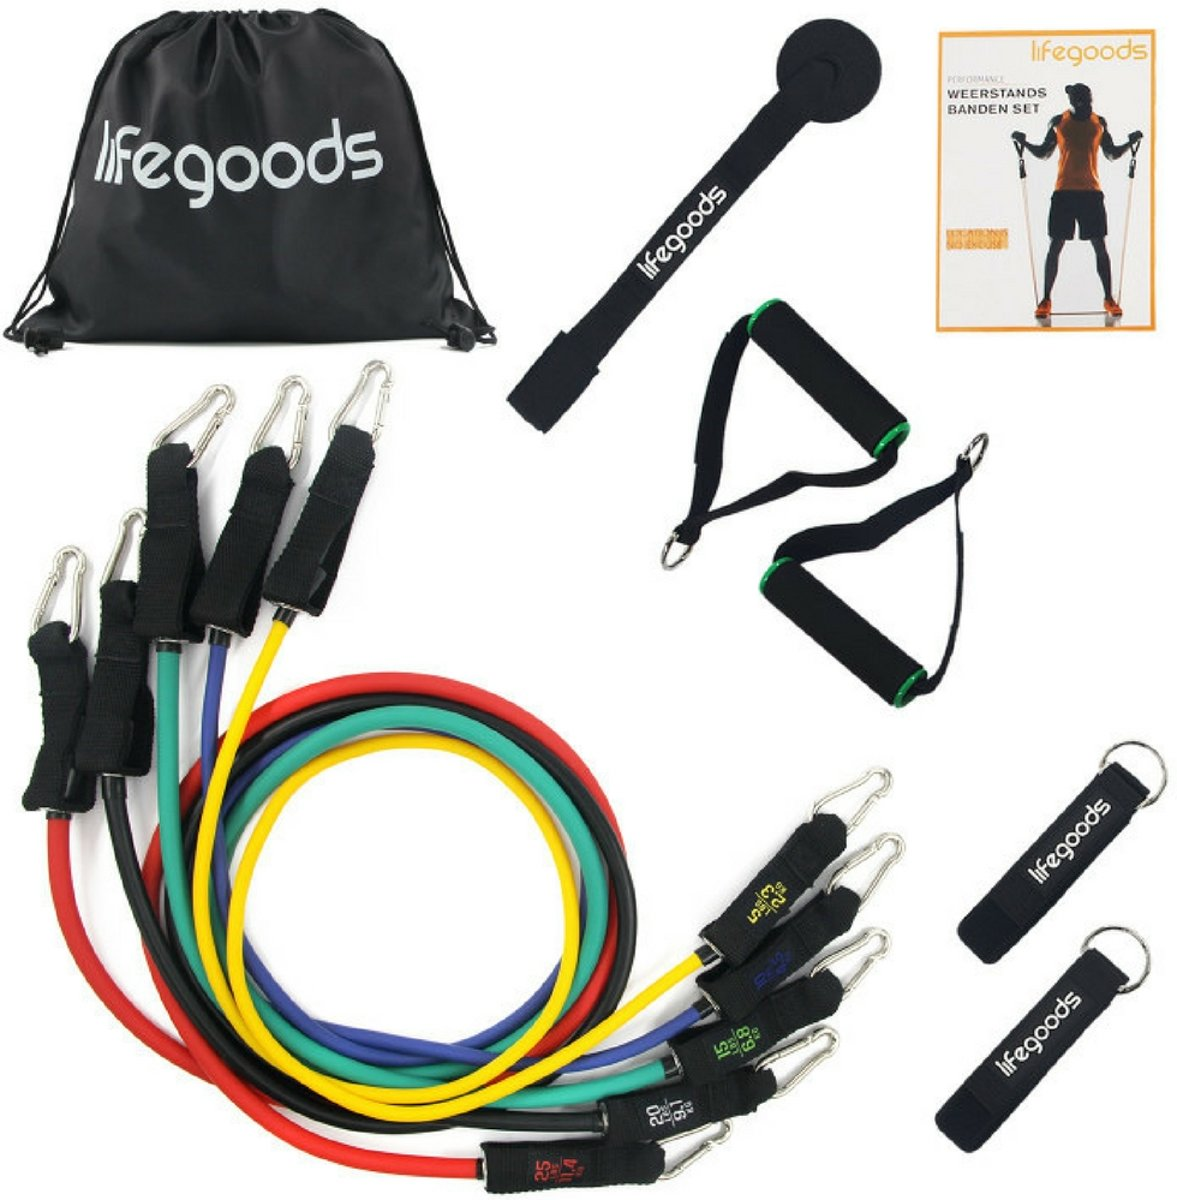 top honderd lifegoods luxe fitness elastiek set xl weerstandlifegoods luxe fitness elastiek set xl weerstand banden resistance power band tube sport